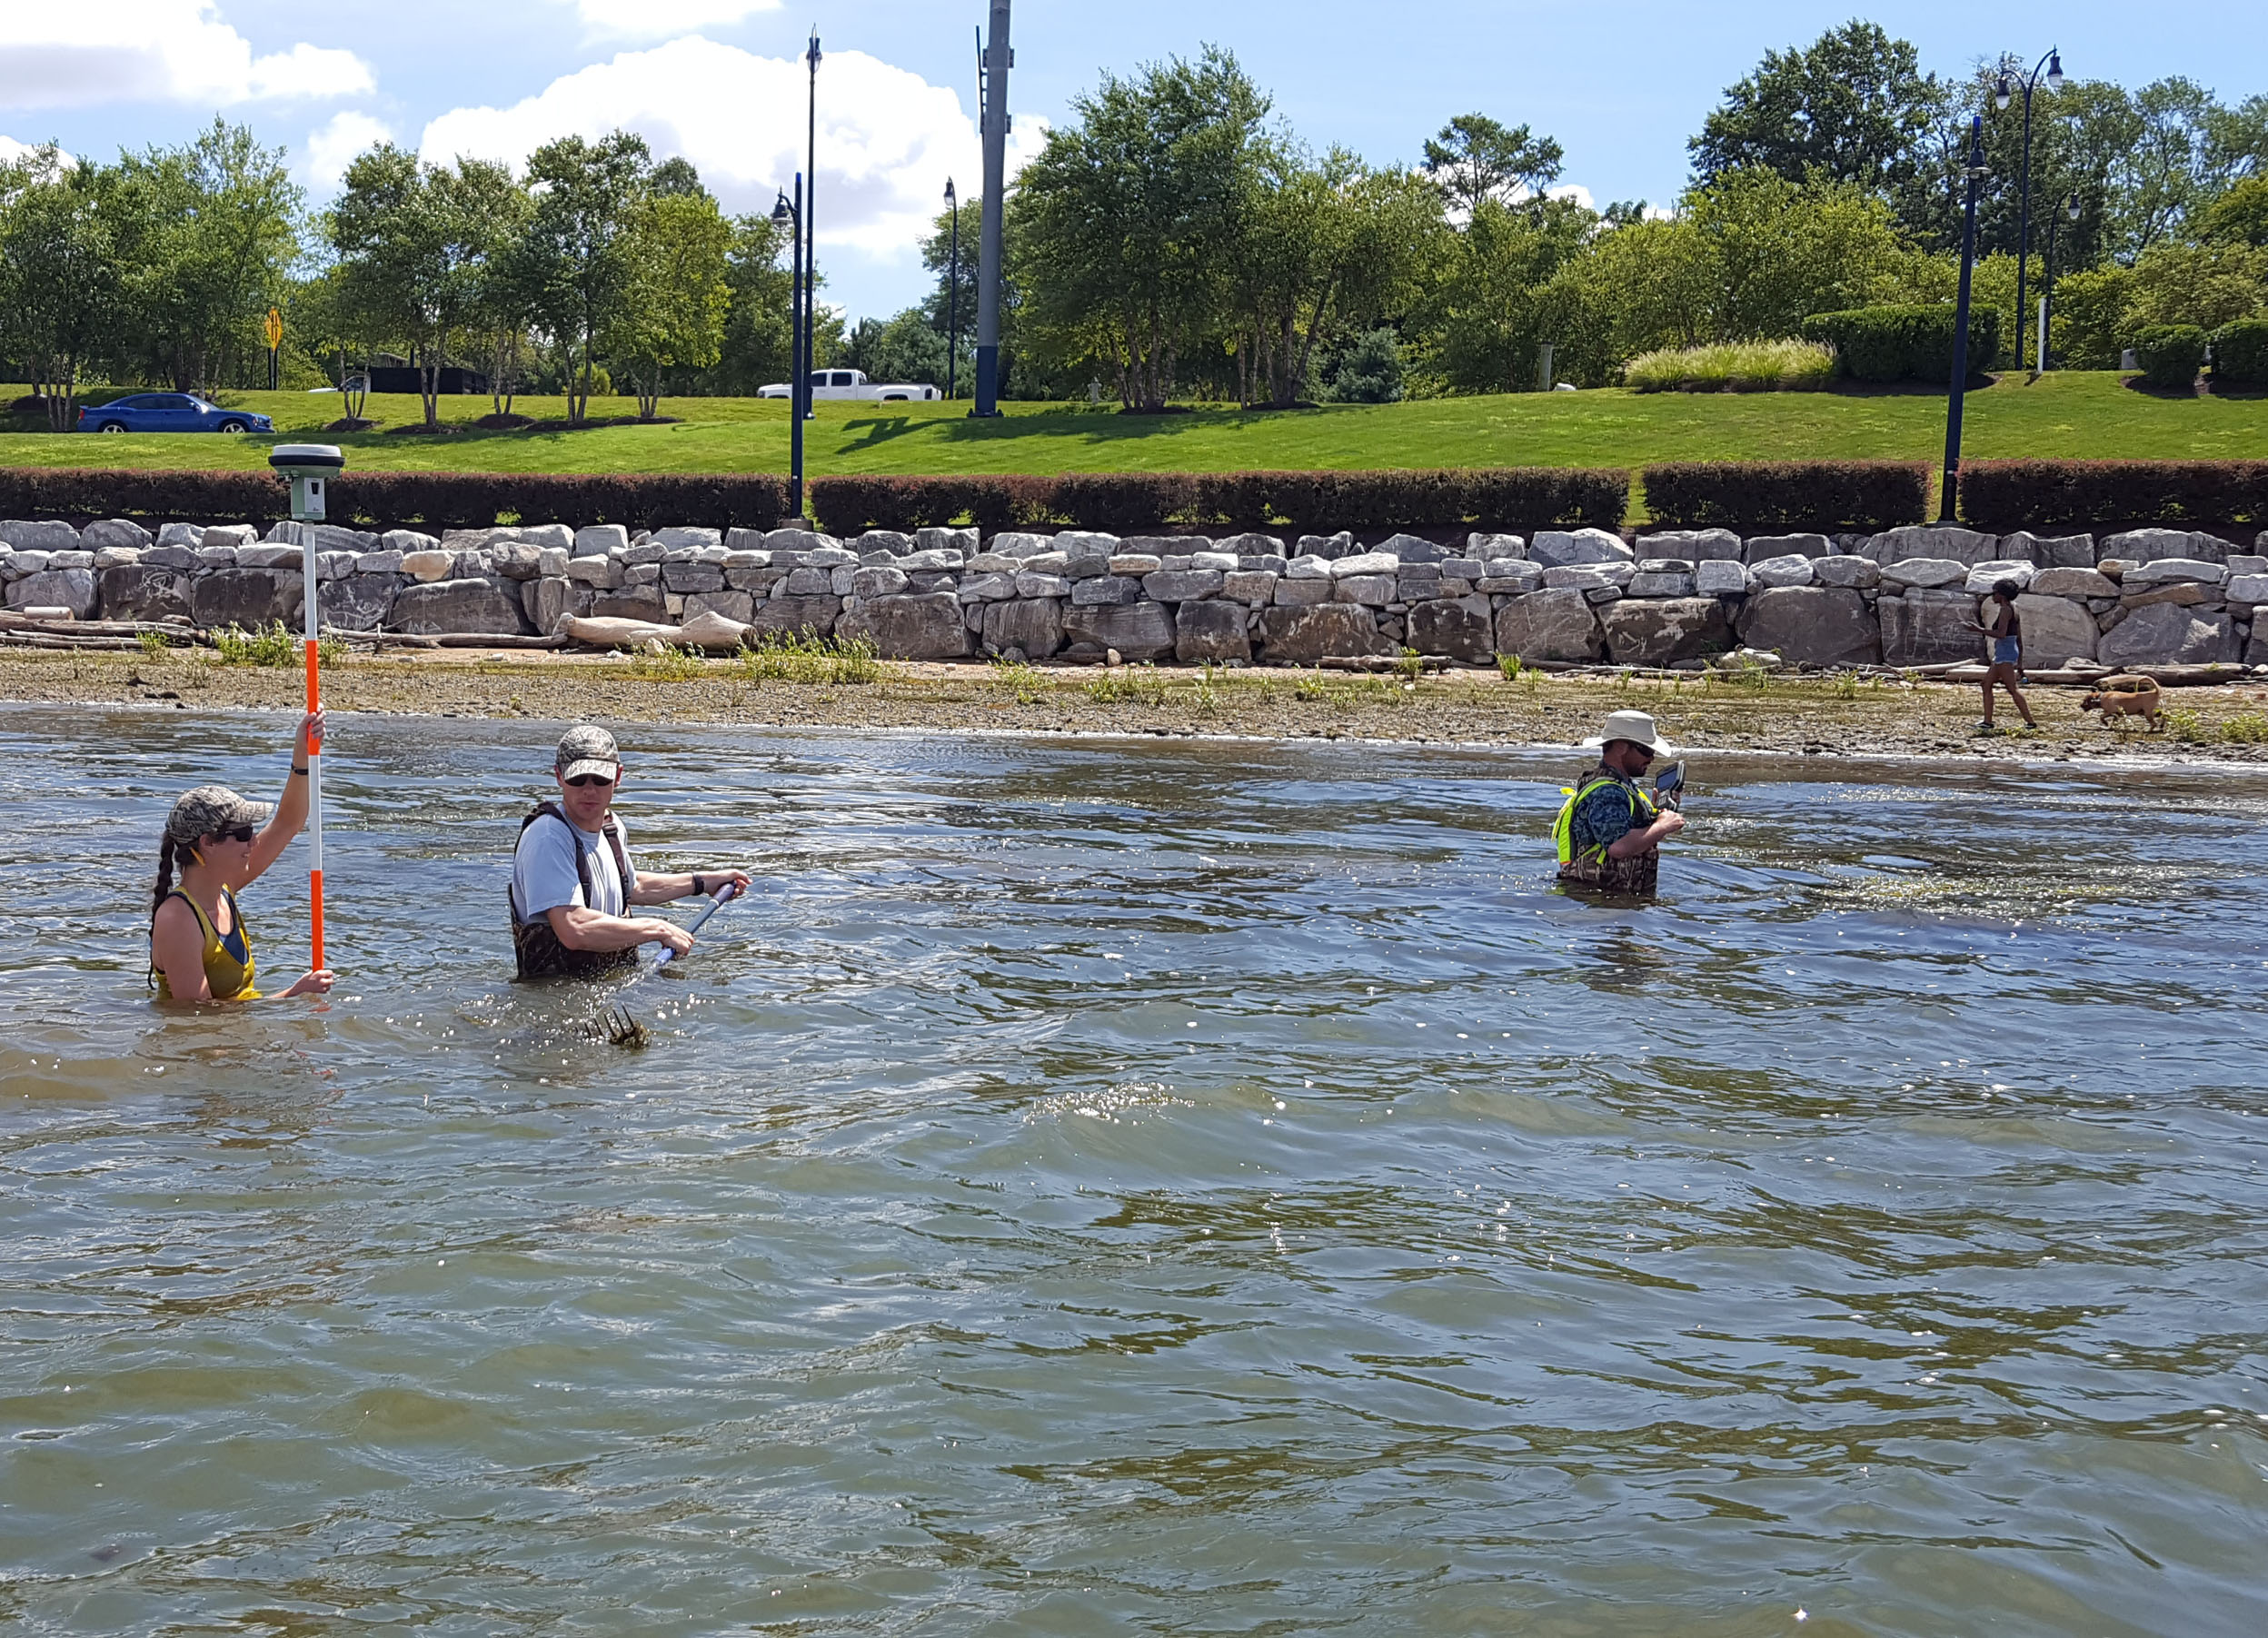 WSSI staff conducting survey in near shore shallow water.